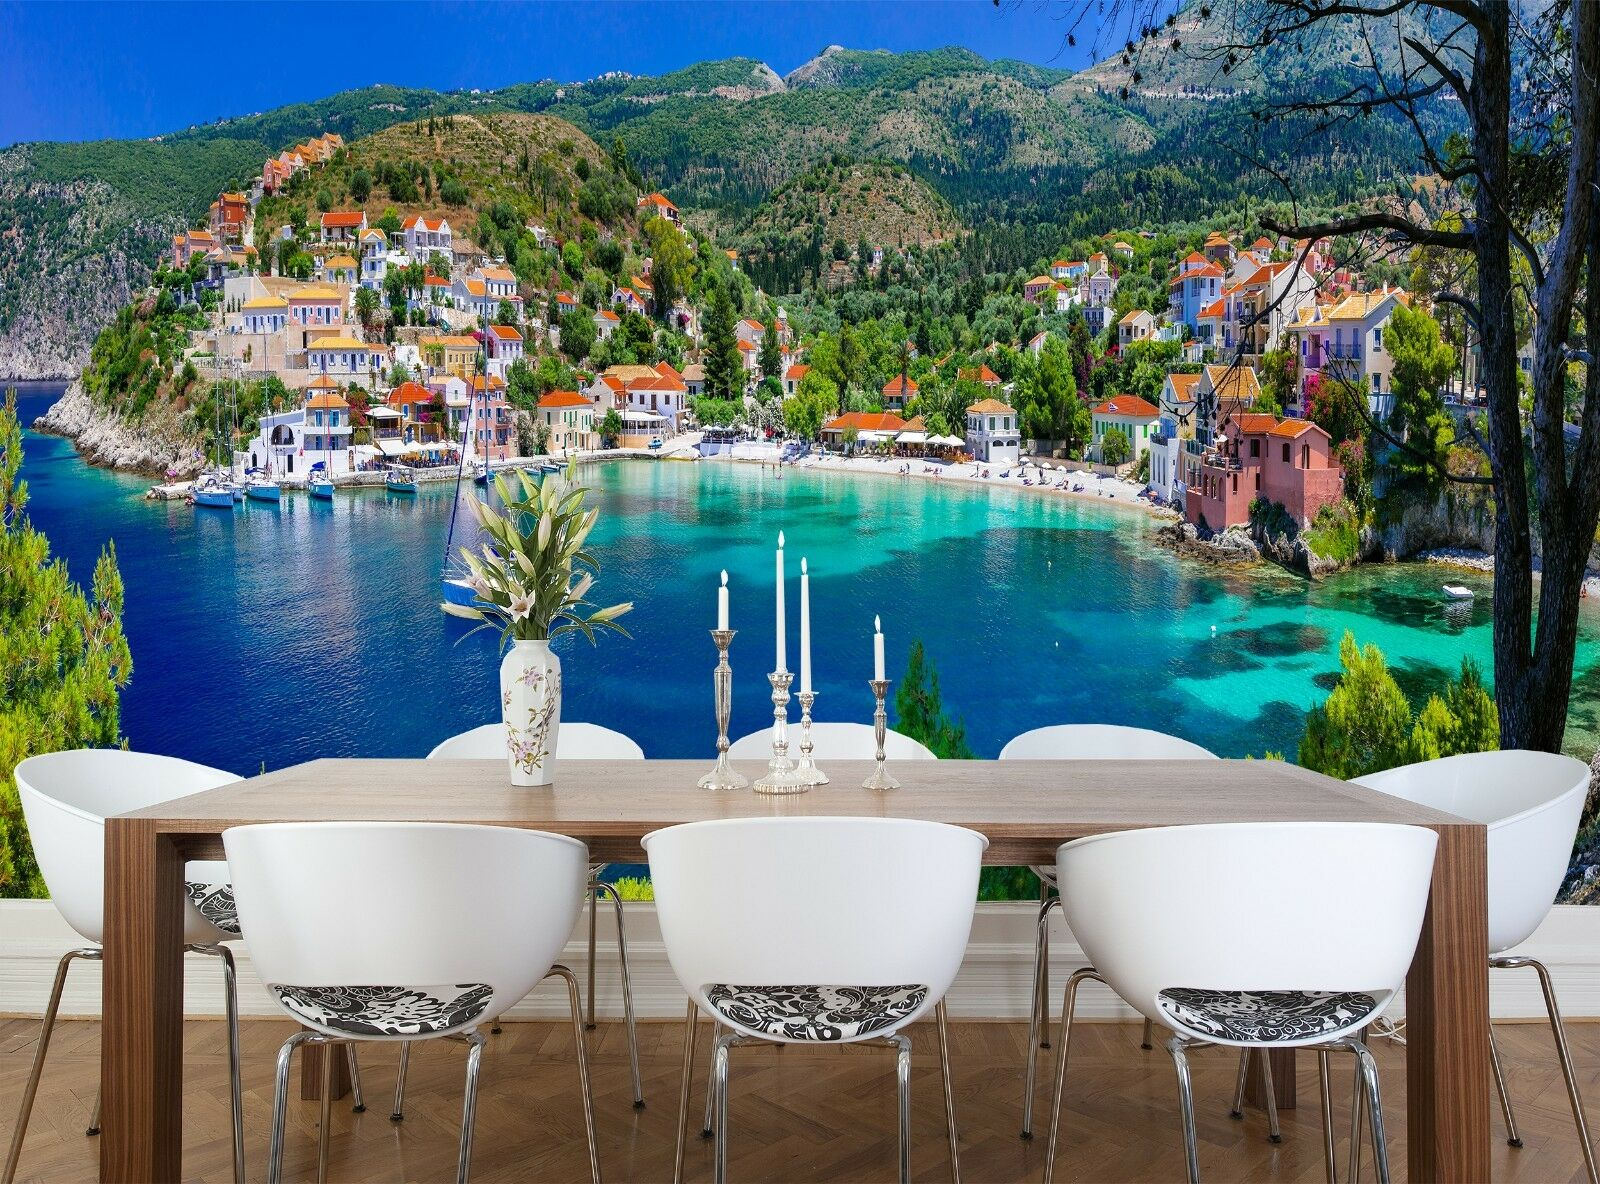 colorful Greece  Wall Mural Photo Wallpaper GIANT WALL DECOR Free Paste